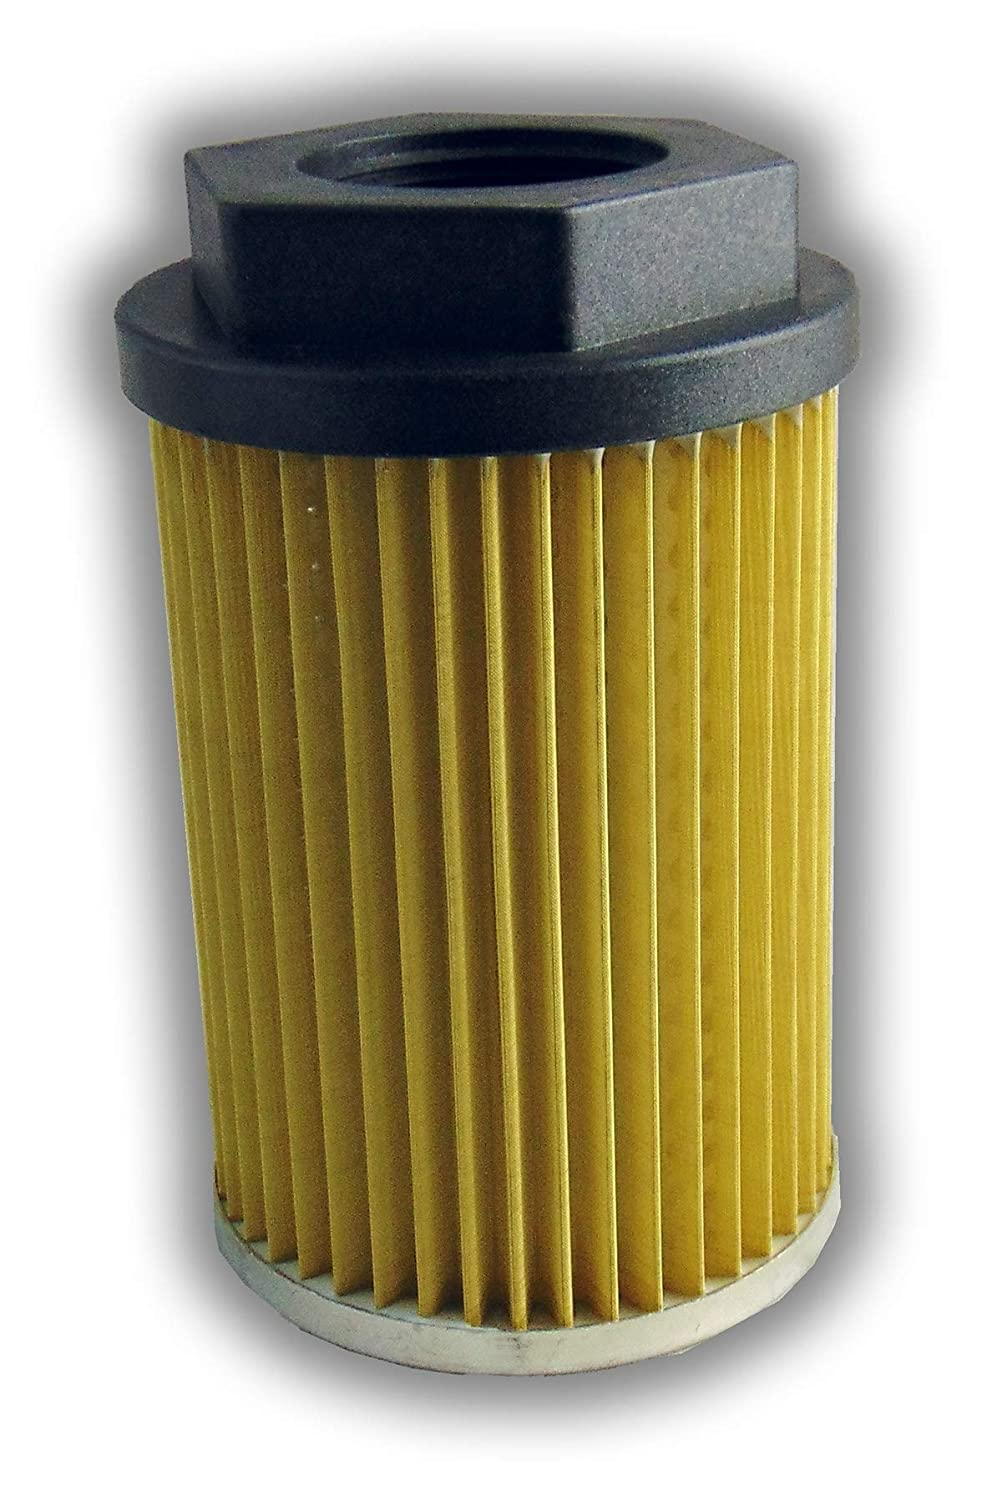 2-Pack OMT SP86A112NR125 Heavy Duty Replacement Hydraulic Filter Element from Big Filter